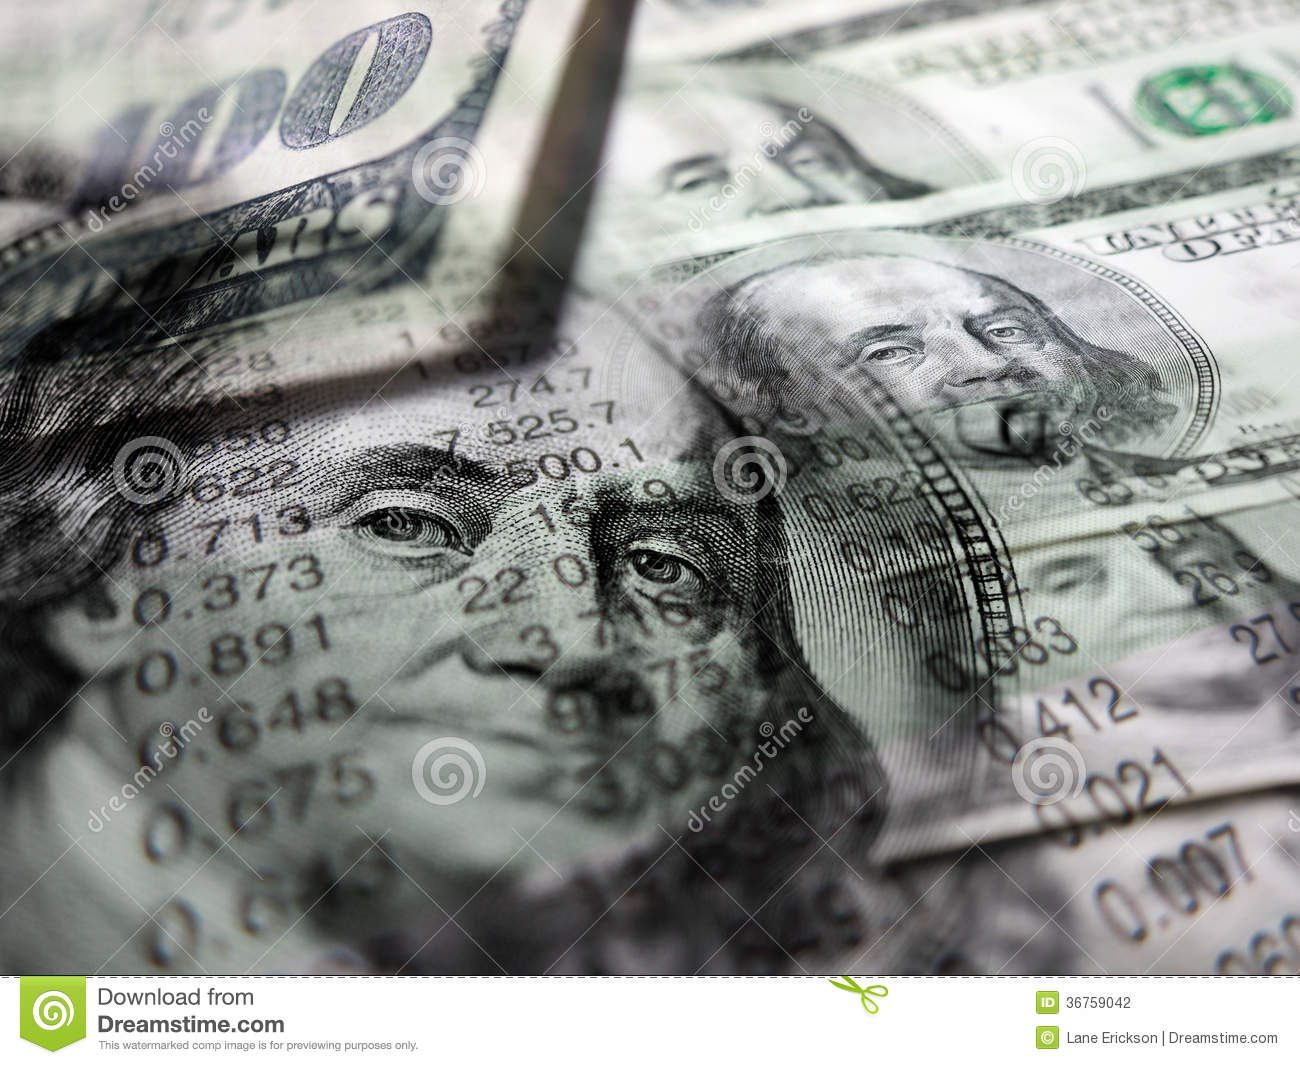 Stock market currency